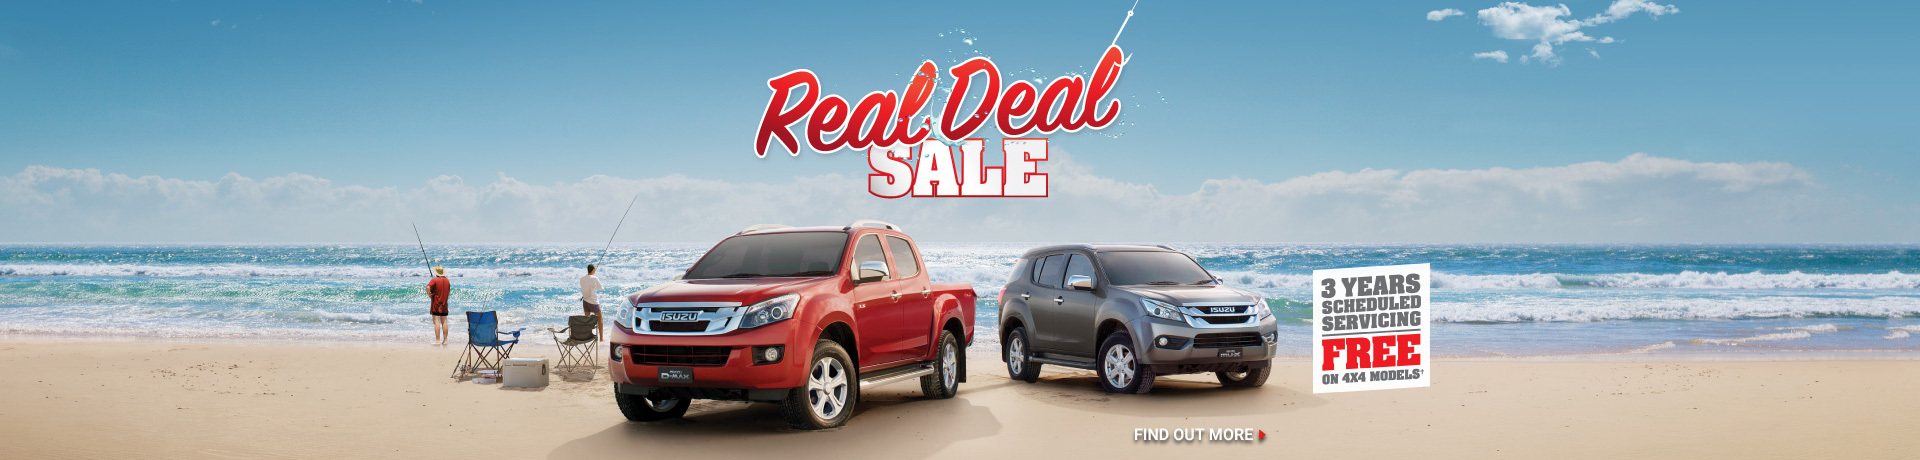 Real Deal Sale